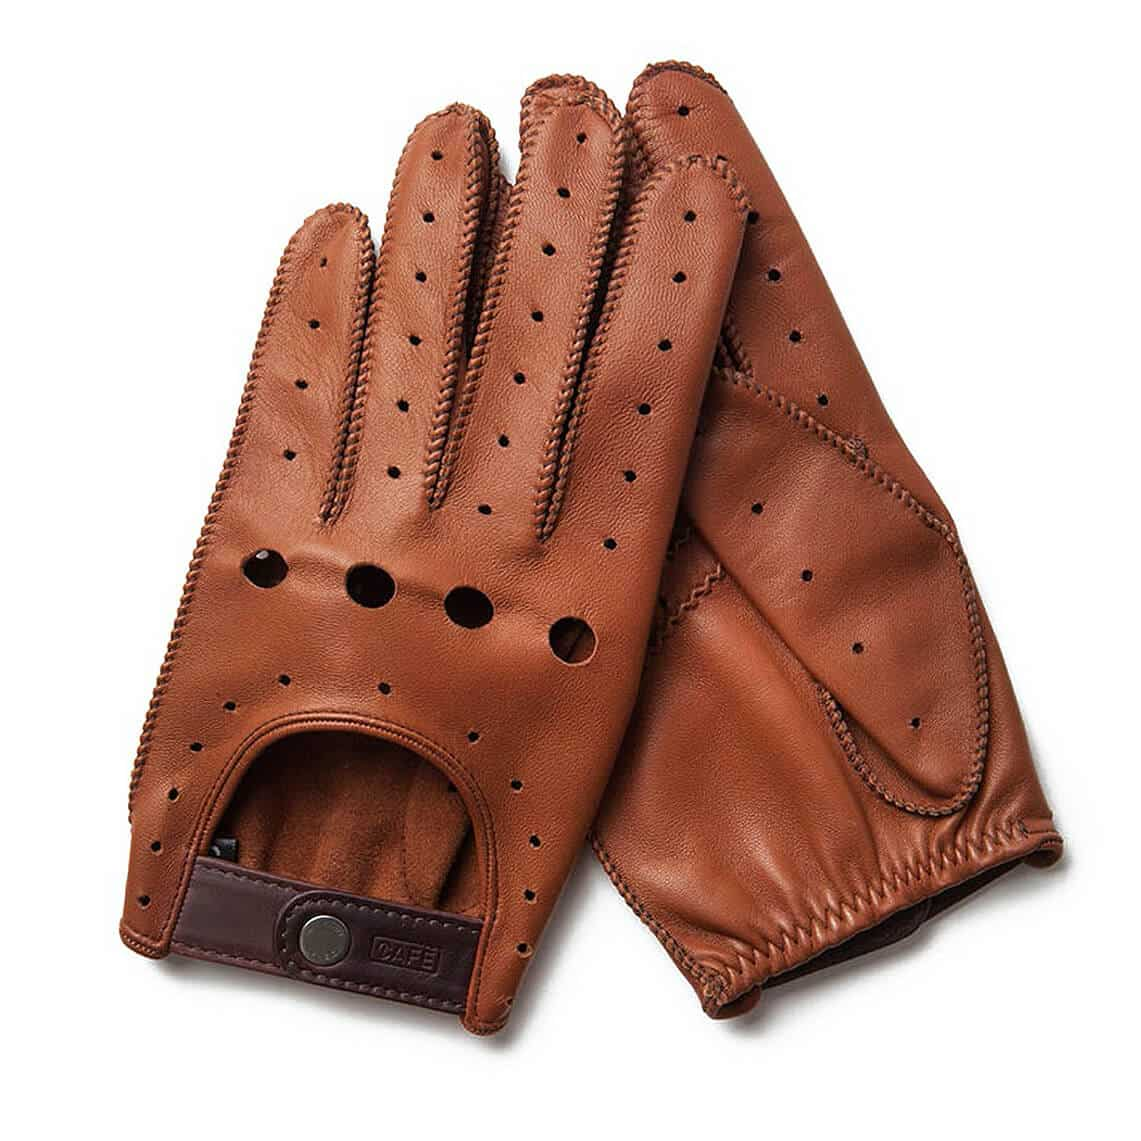 Cafe Leather - Triton Driving Gloves